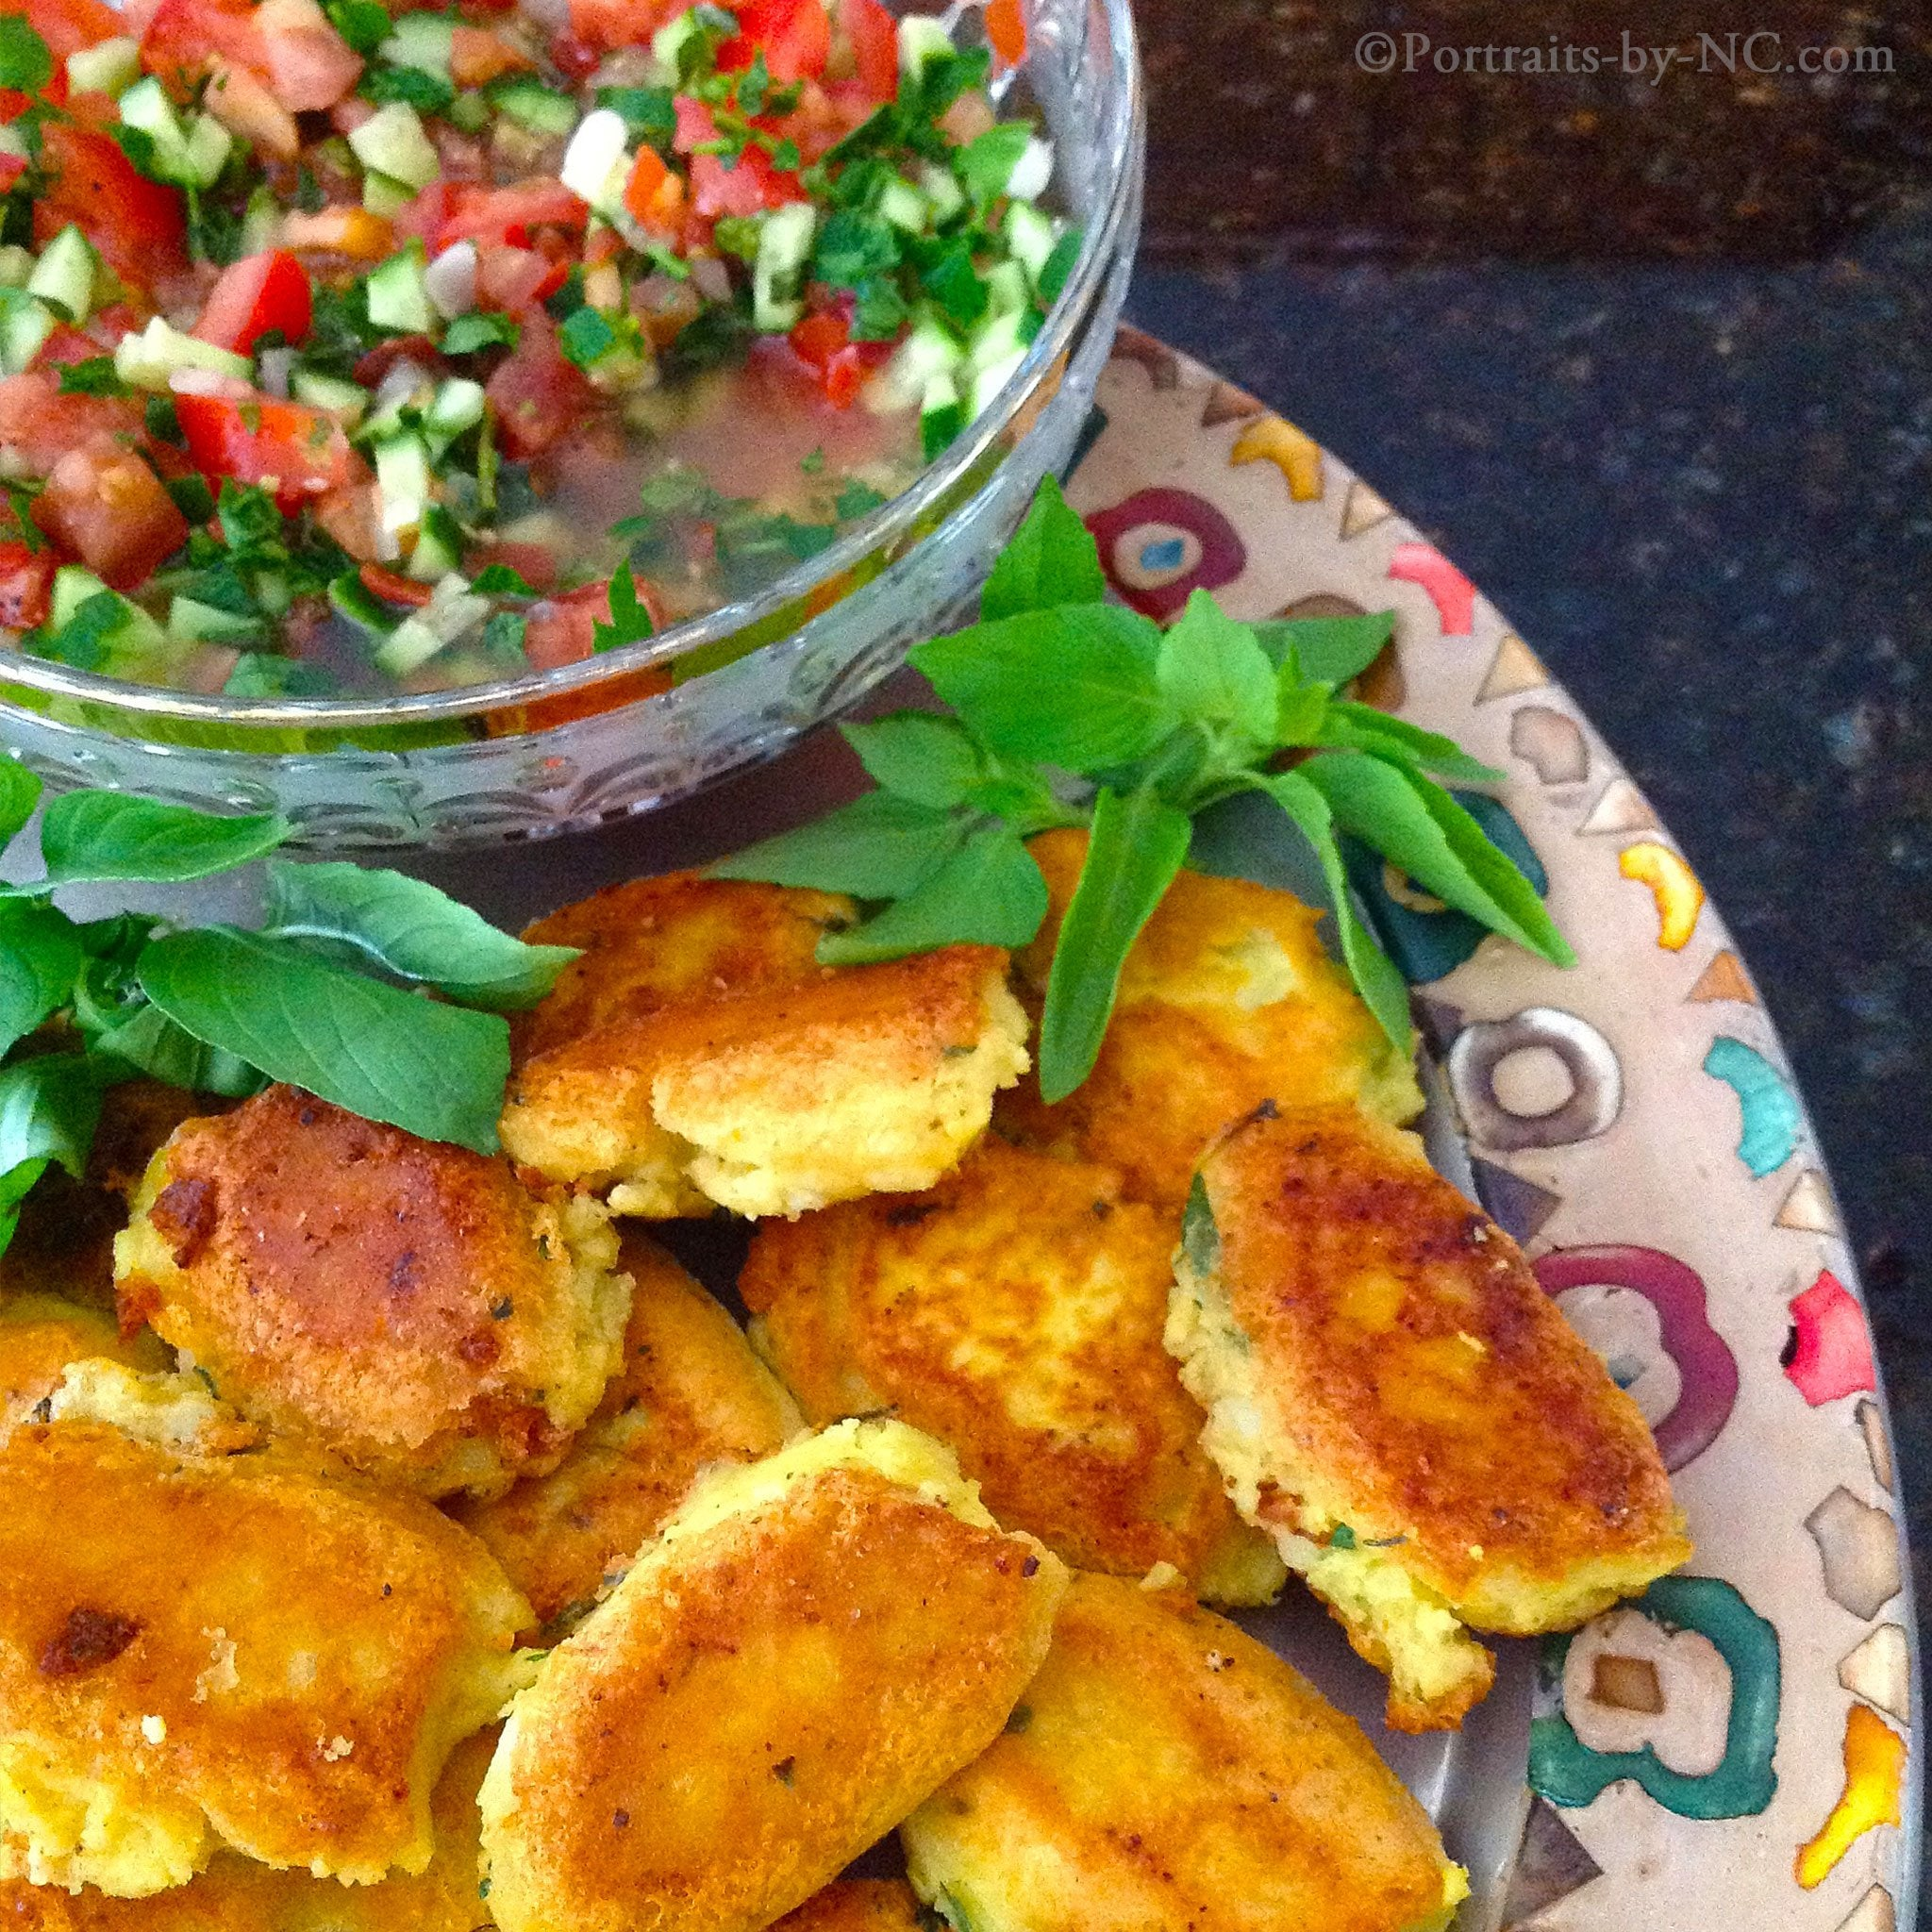 potato patties with salad